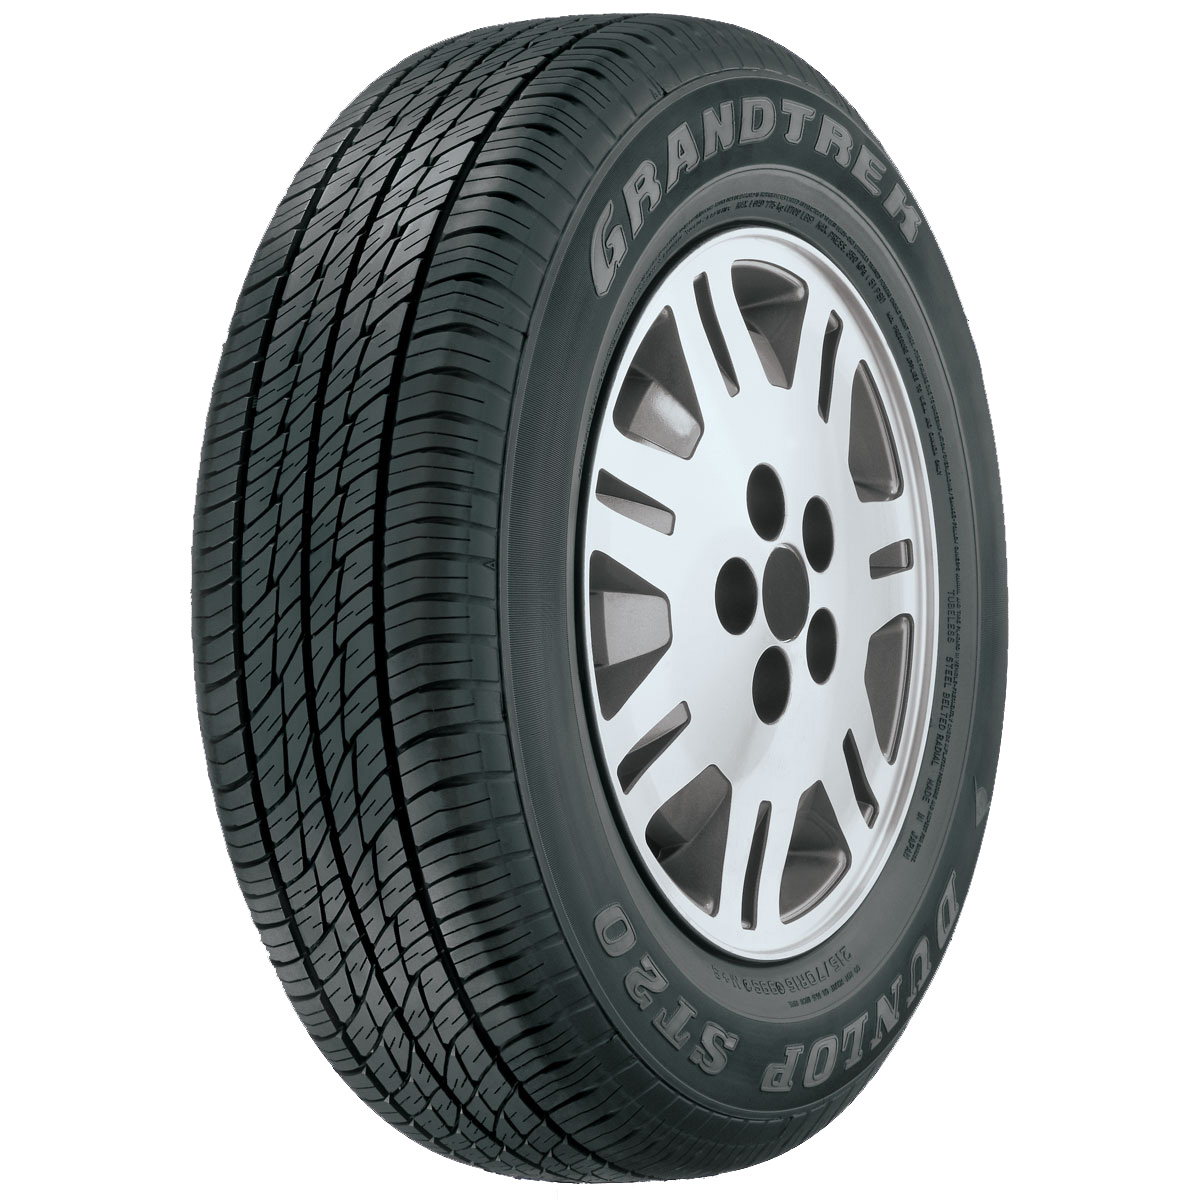 Gomme Nuove Dunlop 215/65 R16 98H GRANDTREK ST 20 M+S pneumatici nuovi All Season